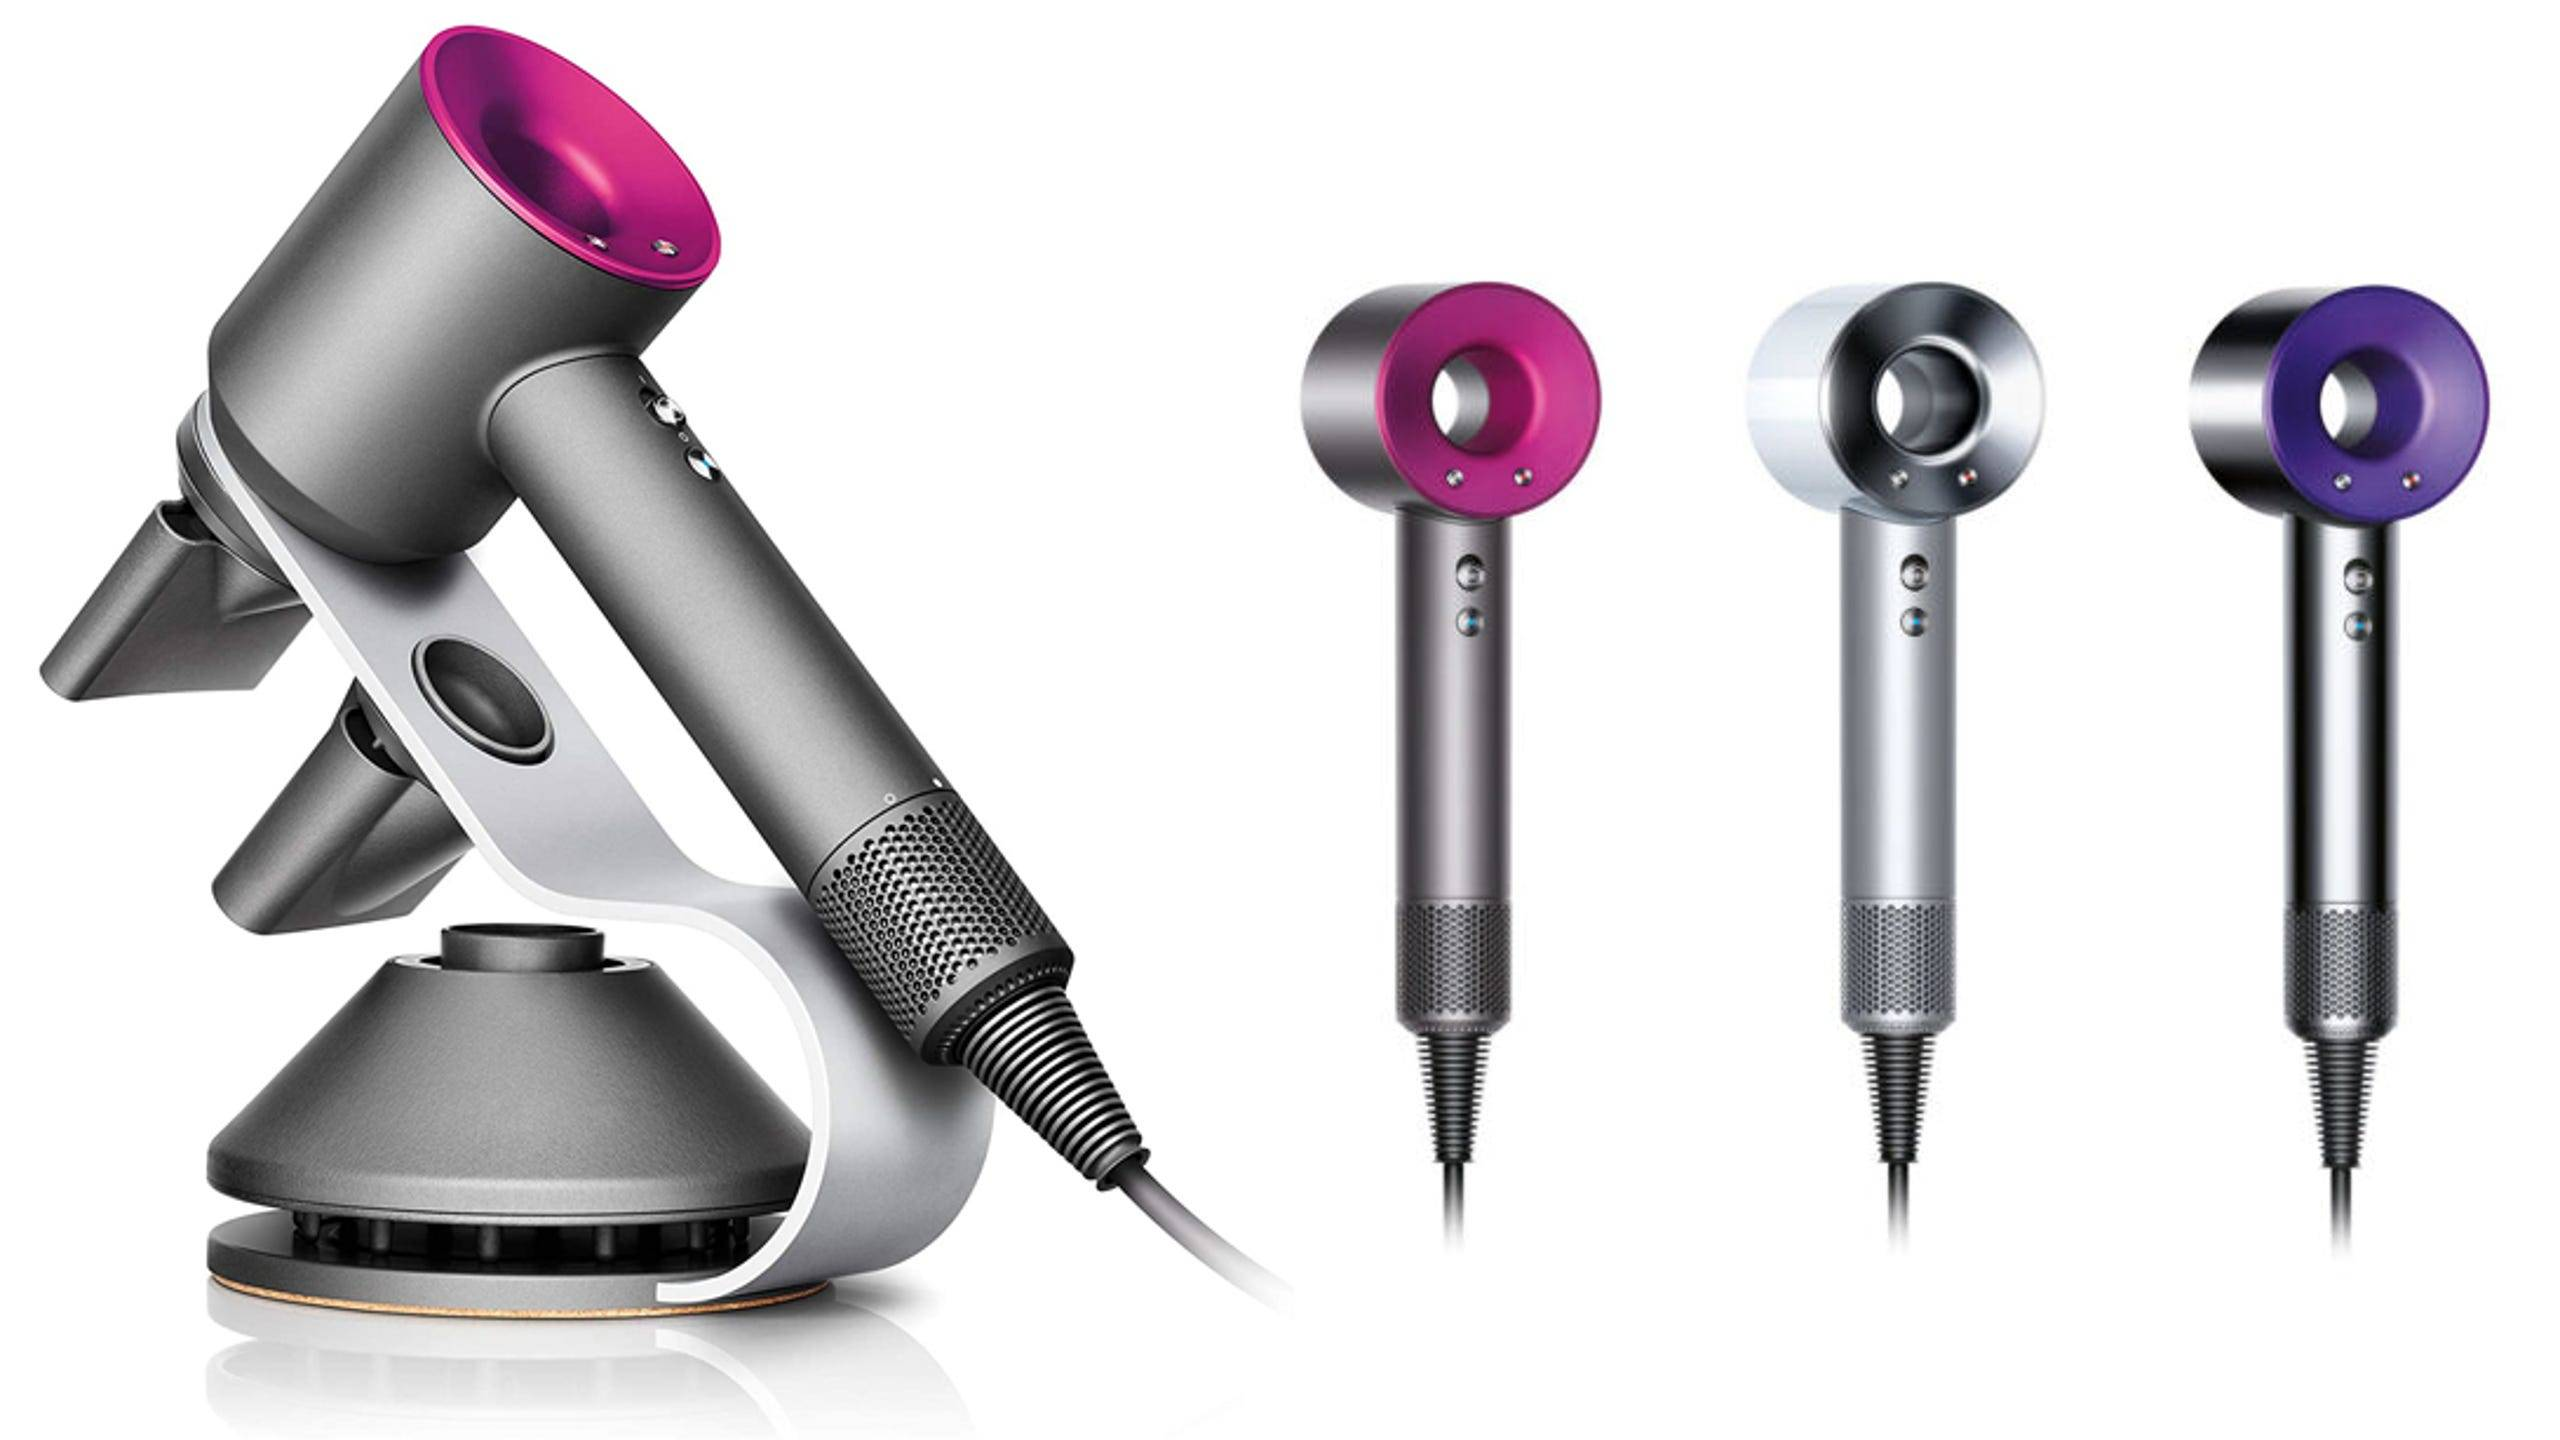 Image of dyson supersonic hair dryer for wavy and curly hair